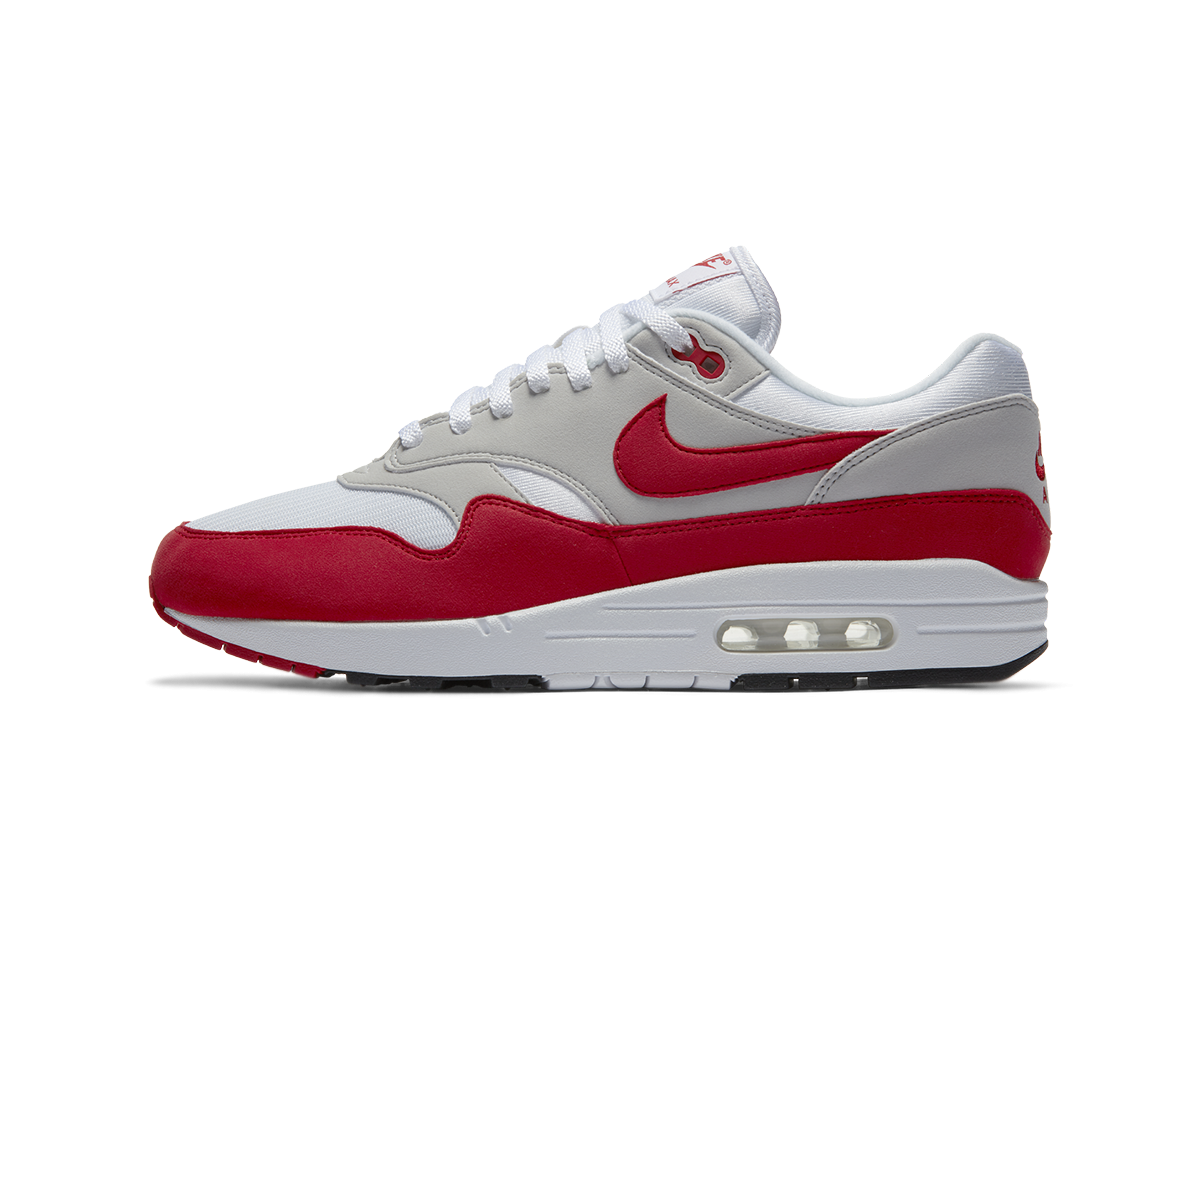 Nike Air Max 1 OG Anniversary white university red Men |